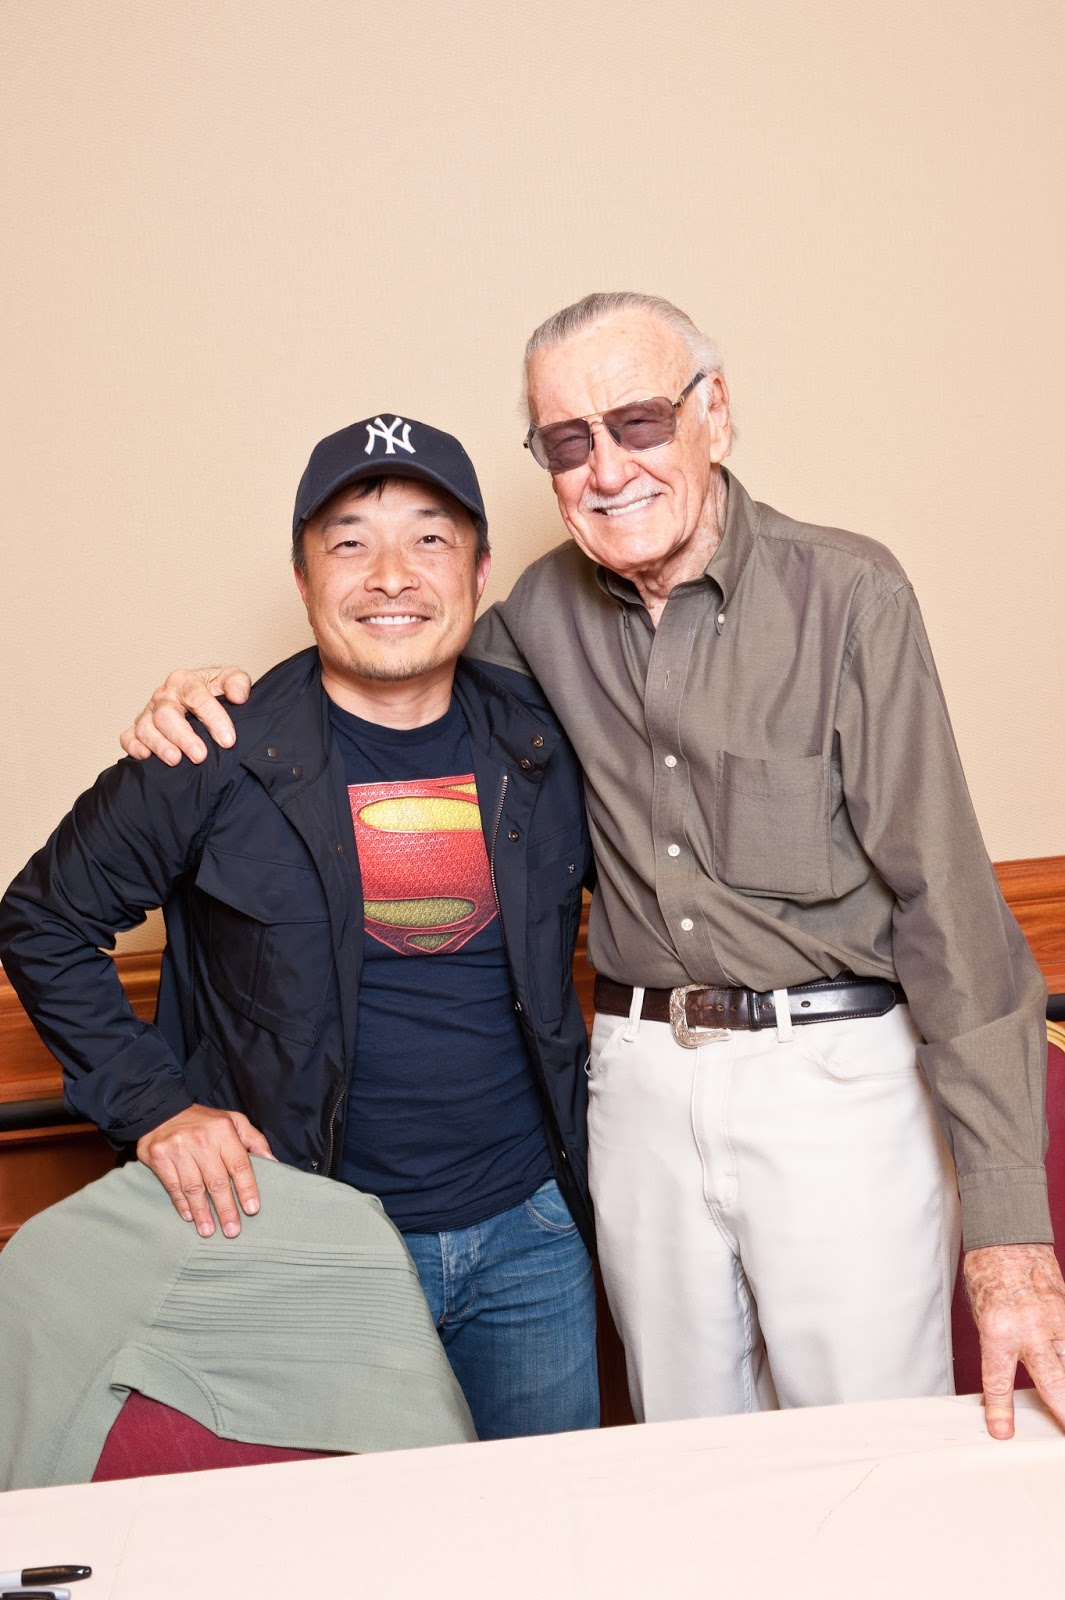 Stan Lee or Jim Lee